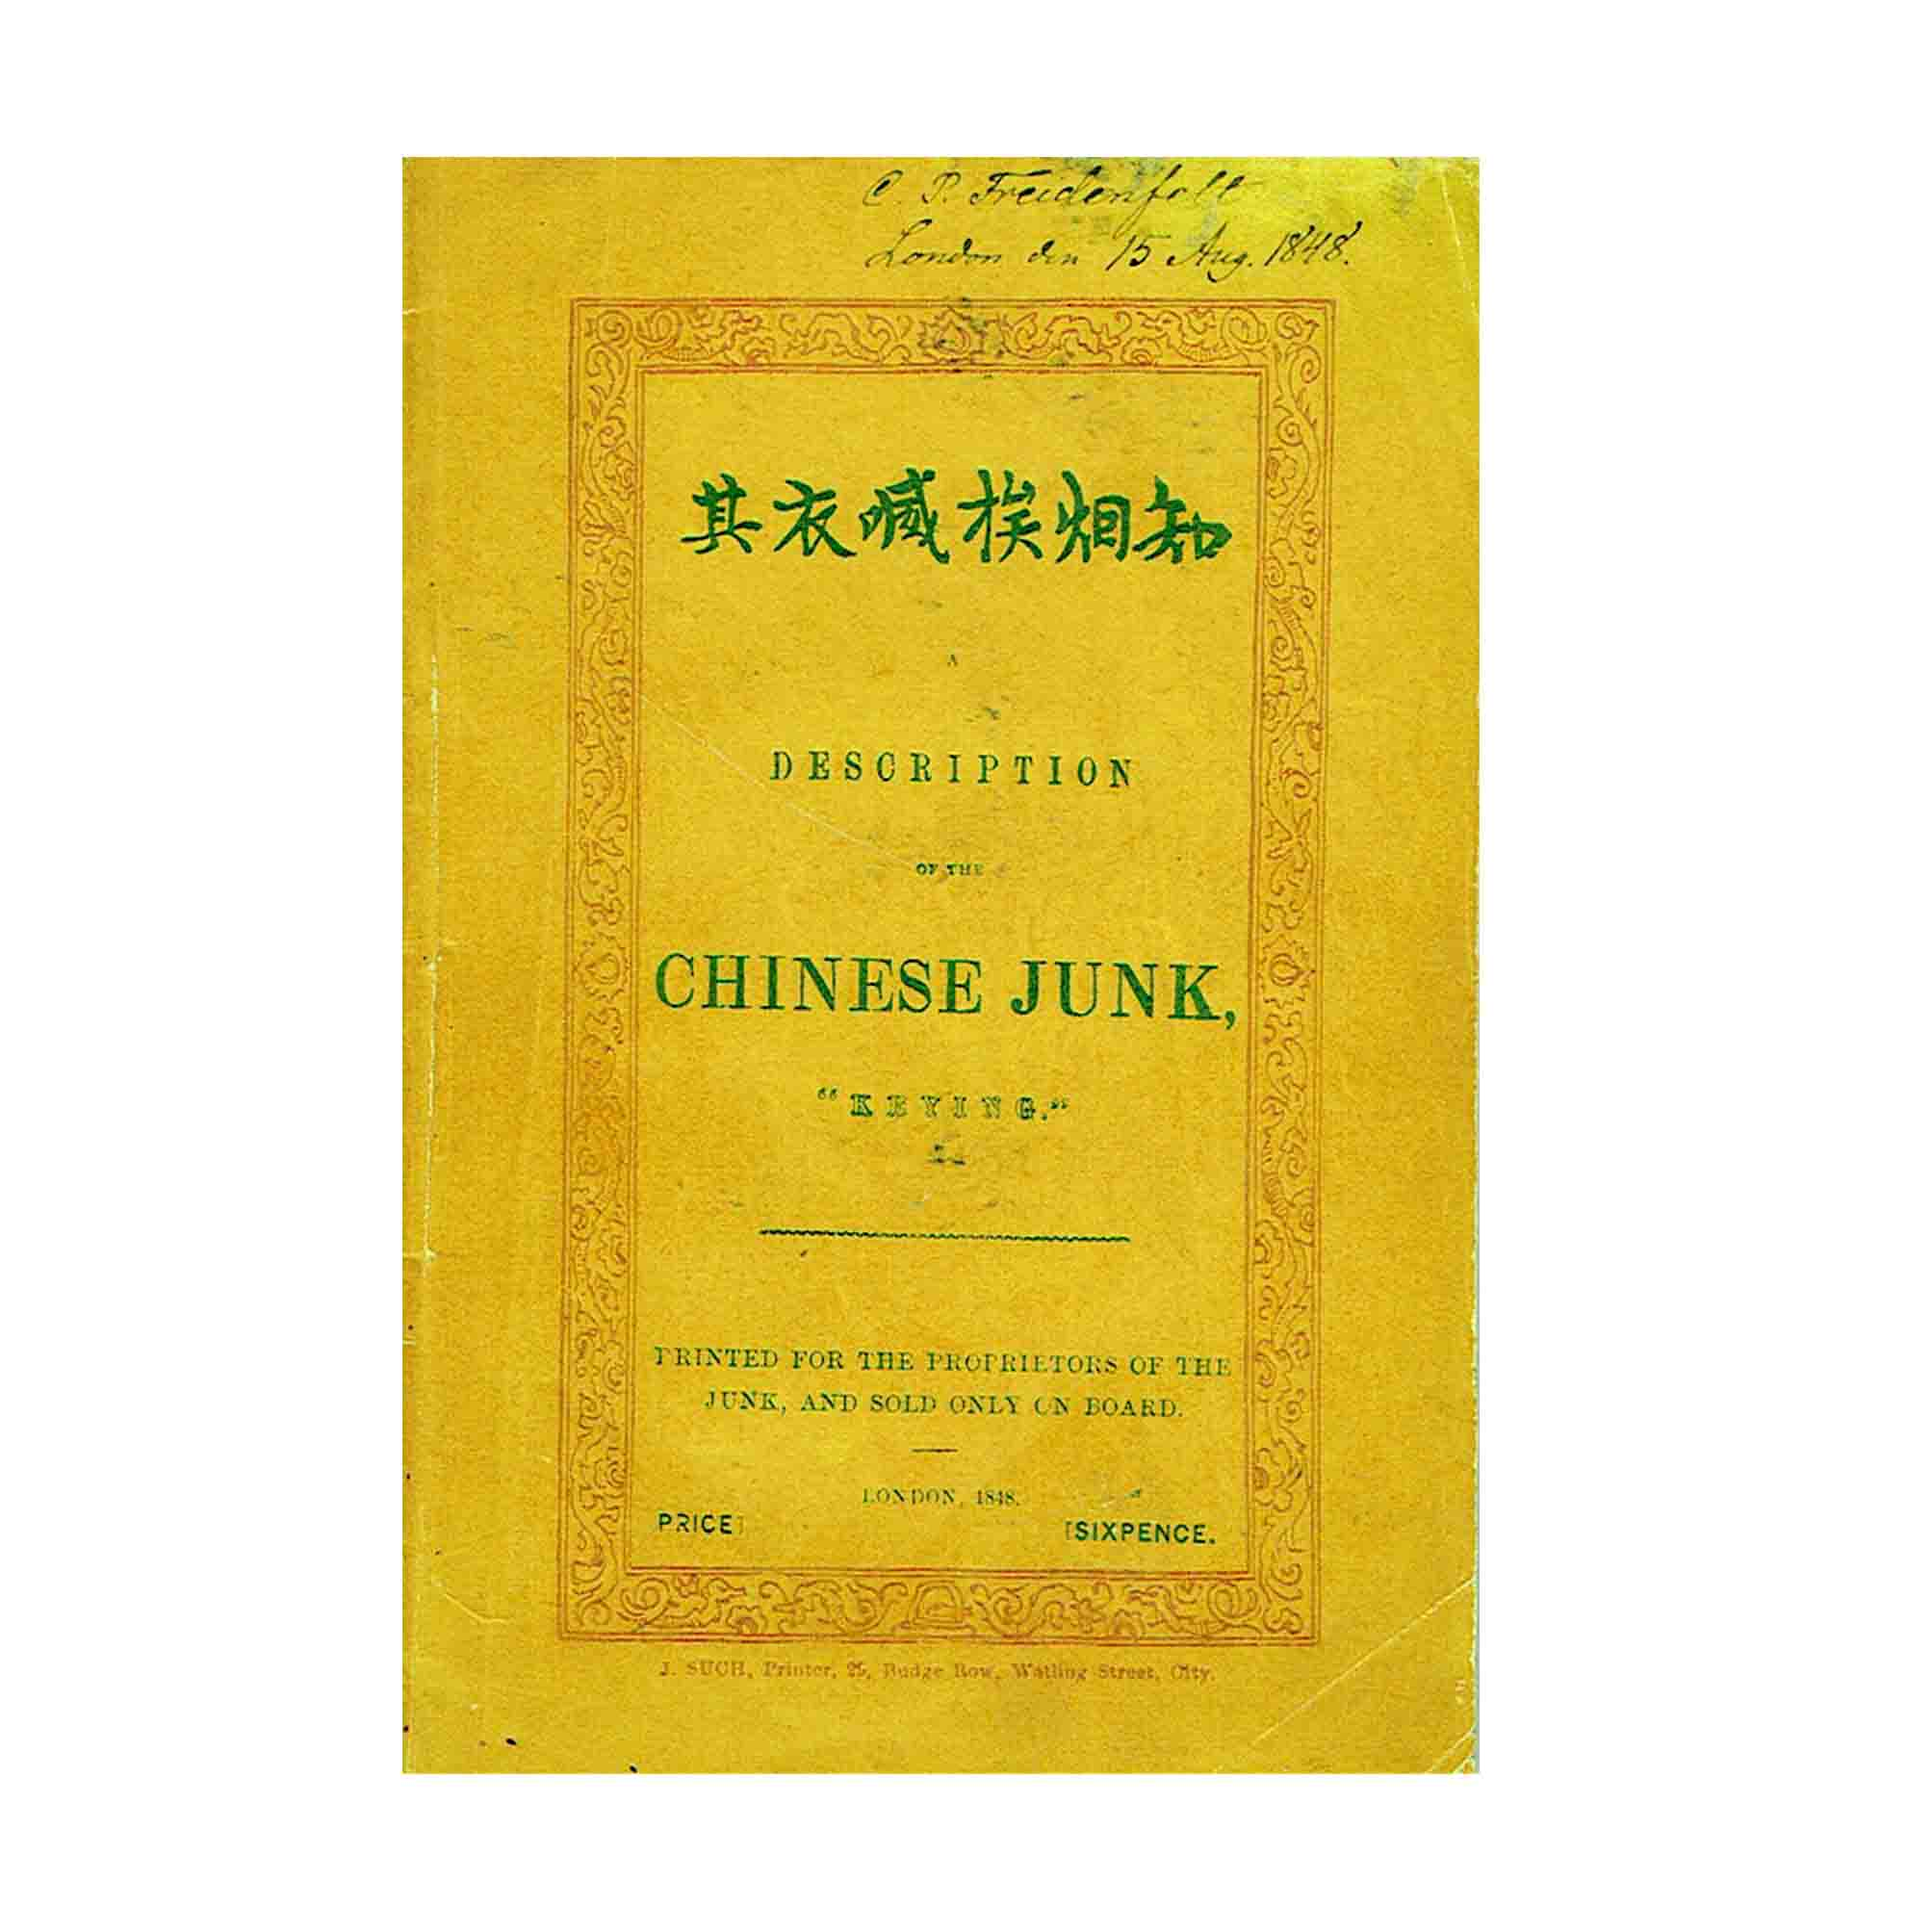 6006 Catalogue Chines Junk Keysing 1848 Autograph Cover N